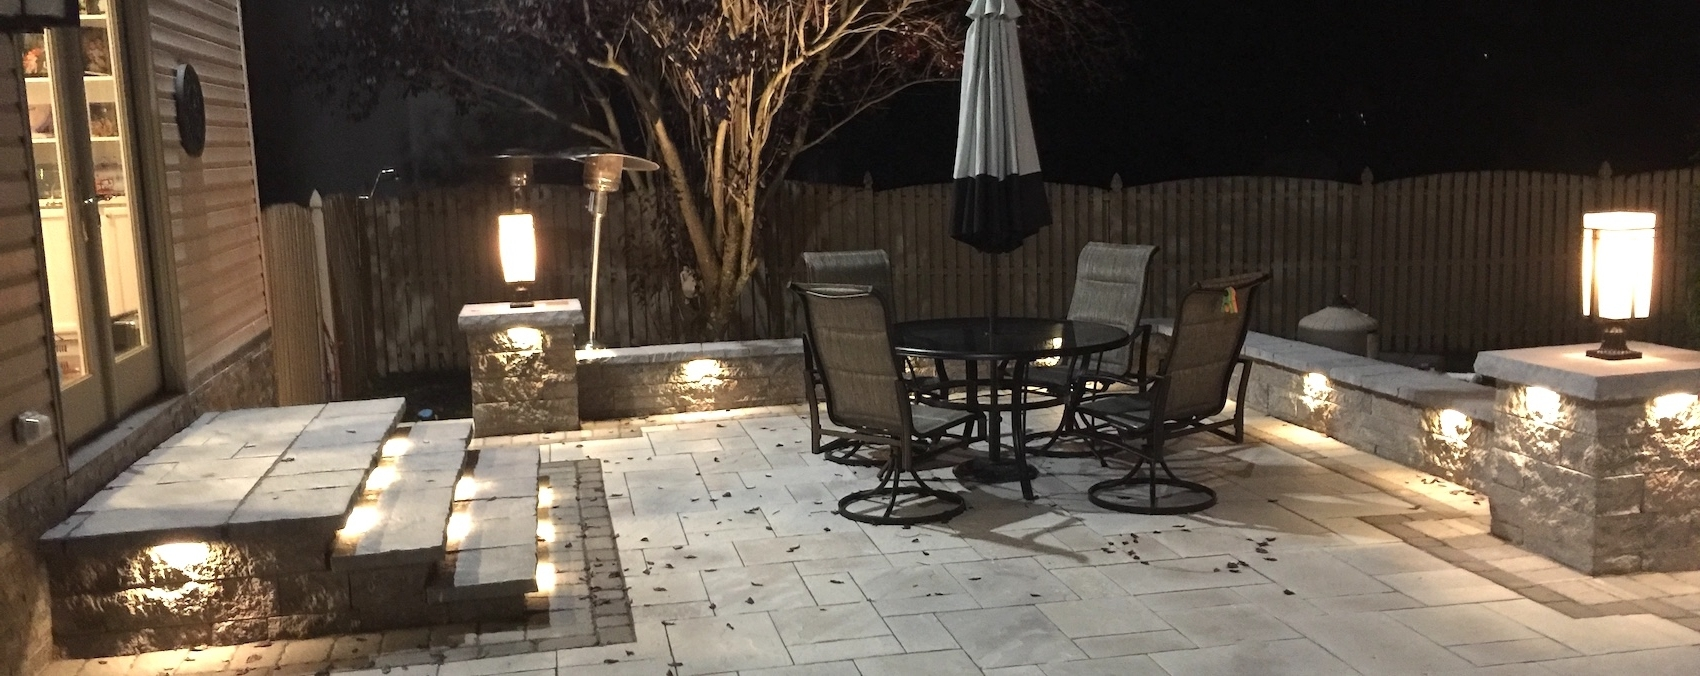 Outdoor Driveway Lanterns Regarding Latest Led Landscape Lighting Nj (View 14 of 20)